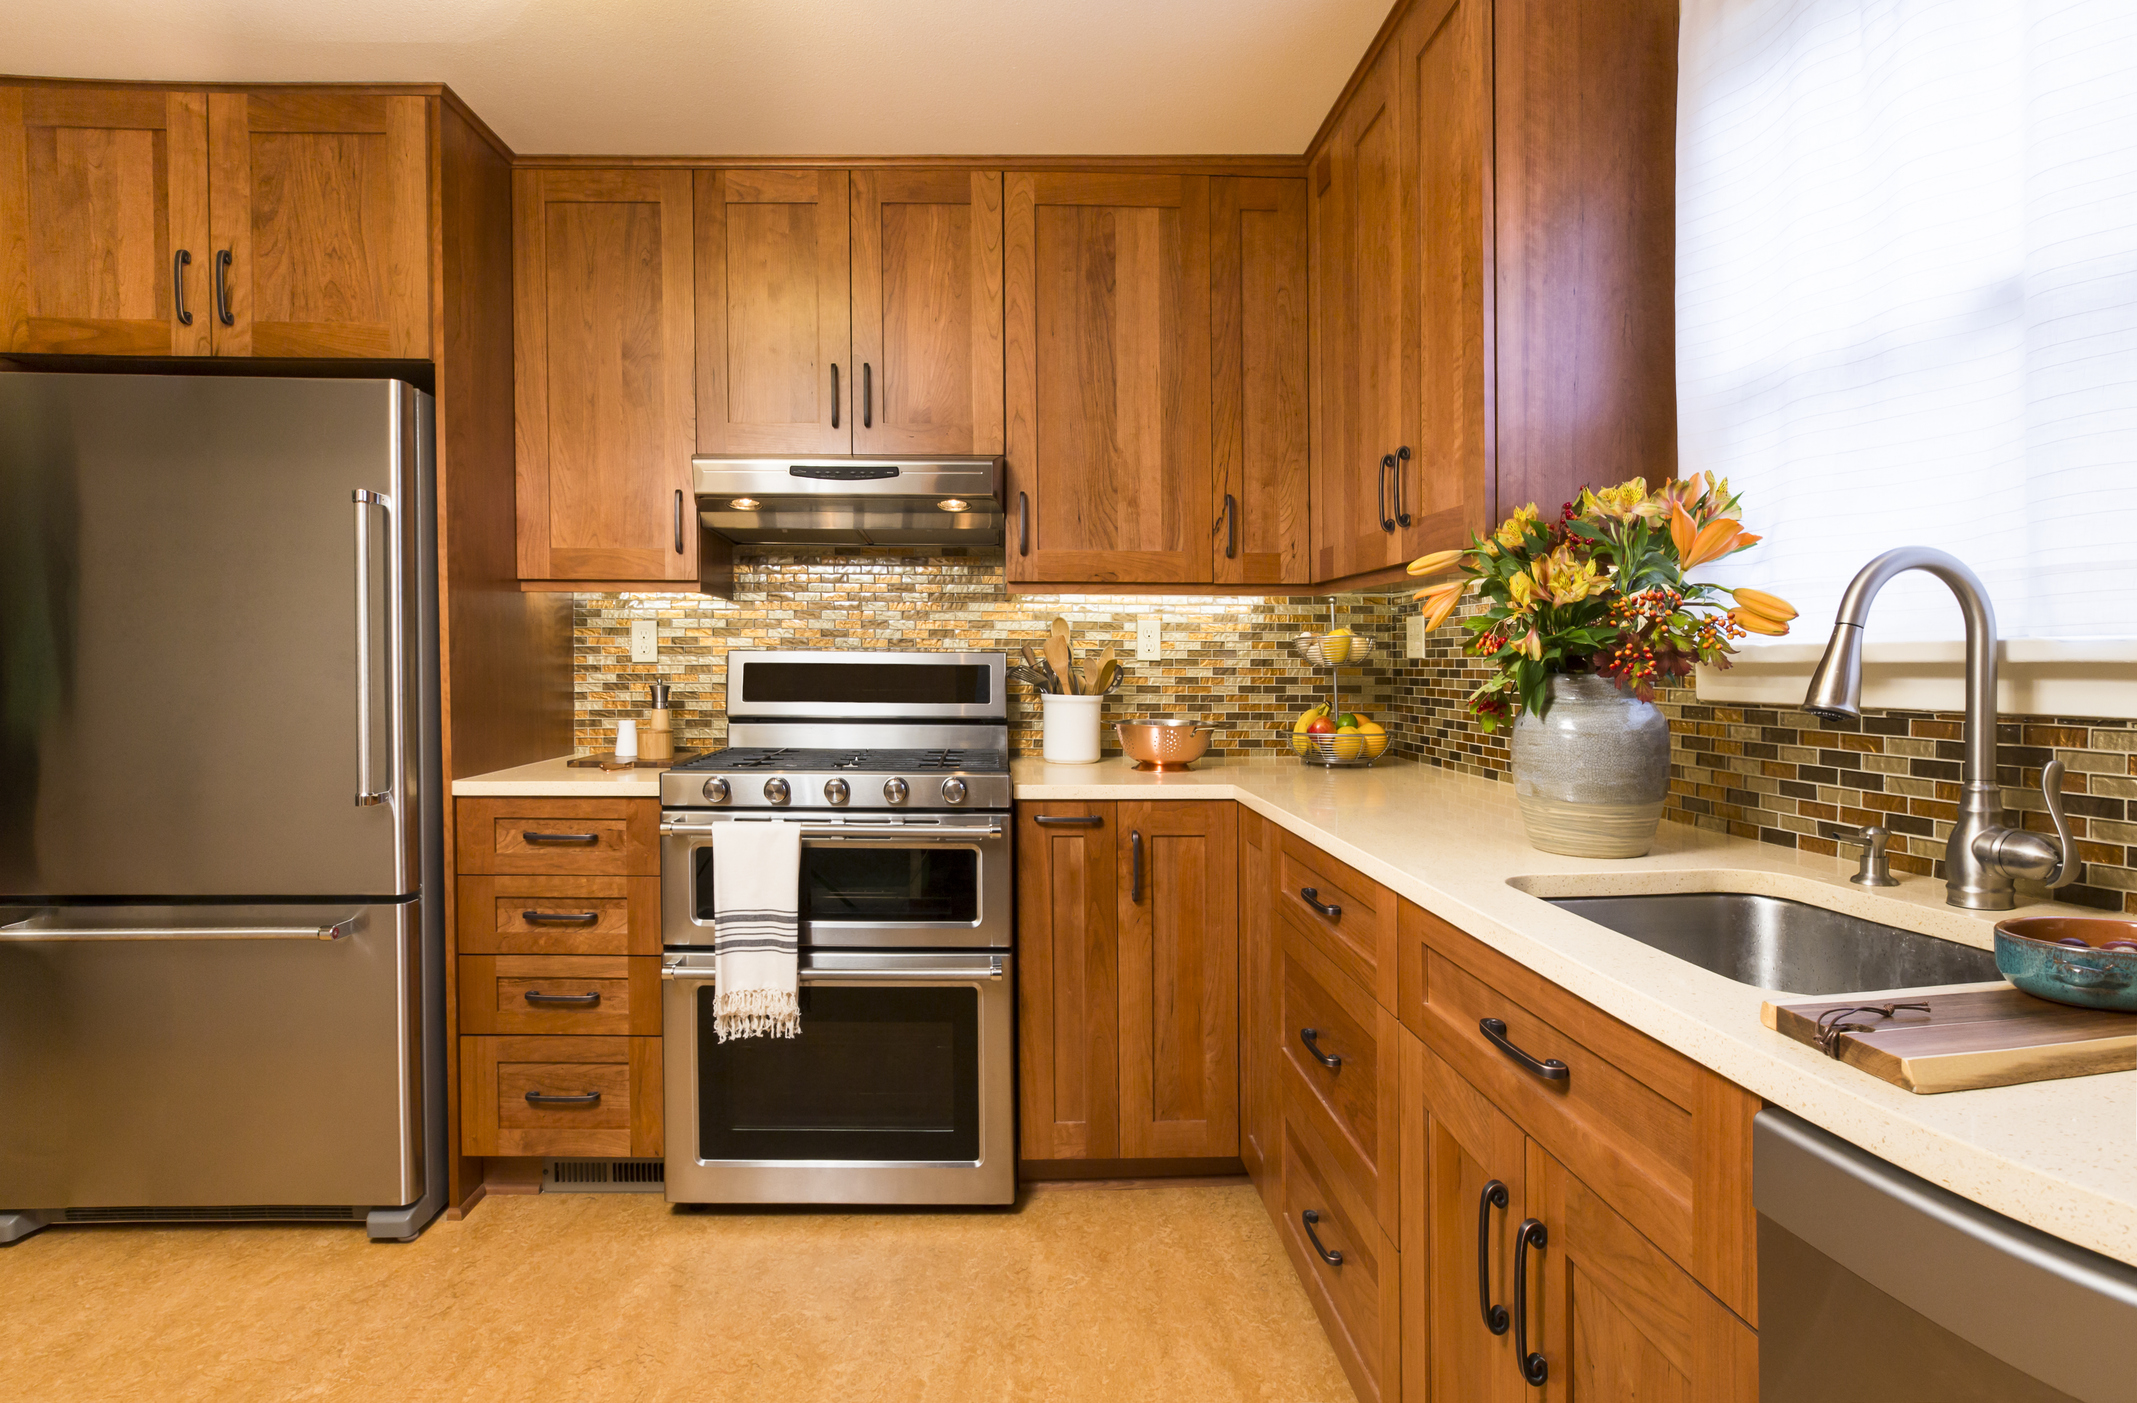 Contemporary upscale kitchen with wood cabinets and stainless steel appliances